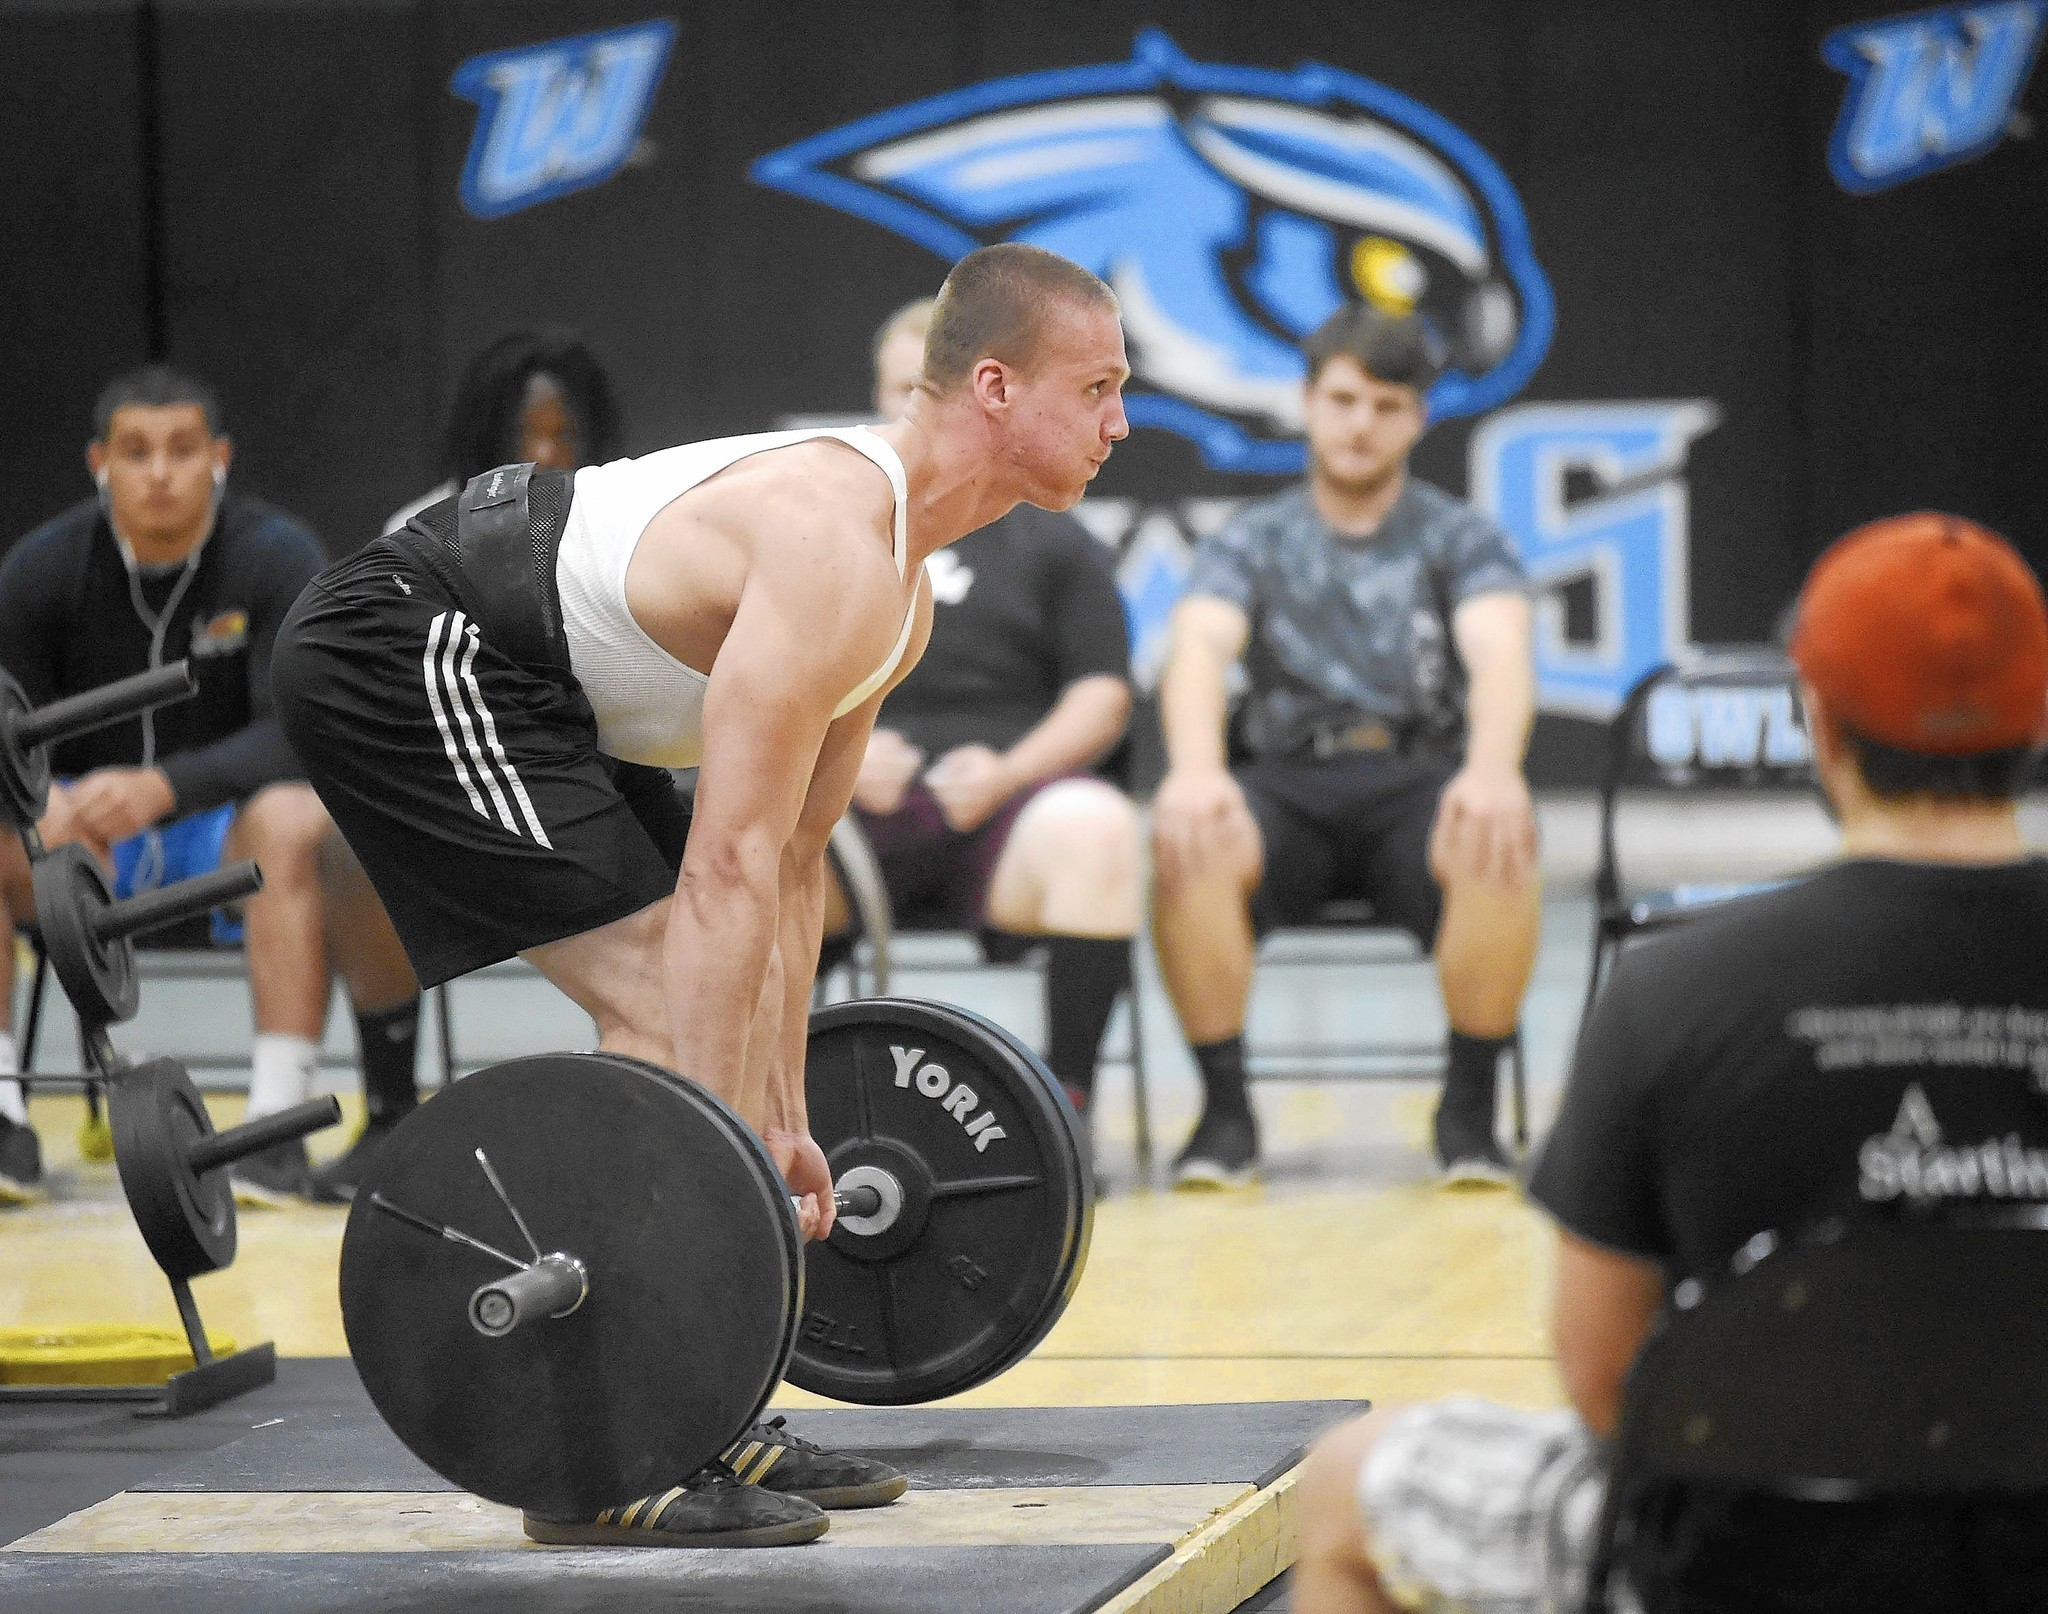 Weightlifting: High school powerlifting meet a success in second year - Carroll County Times